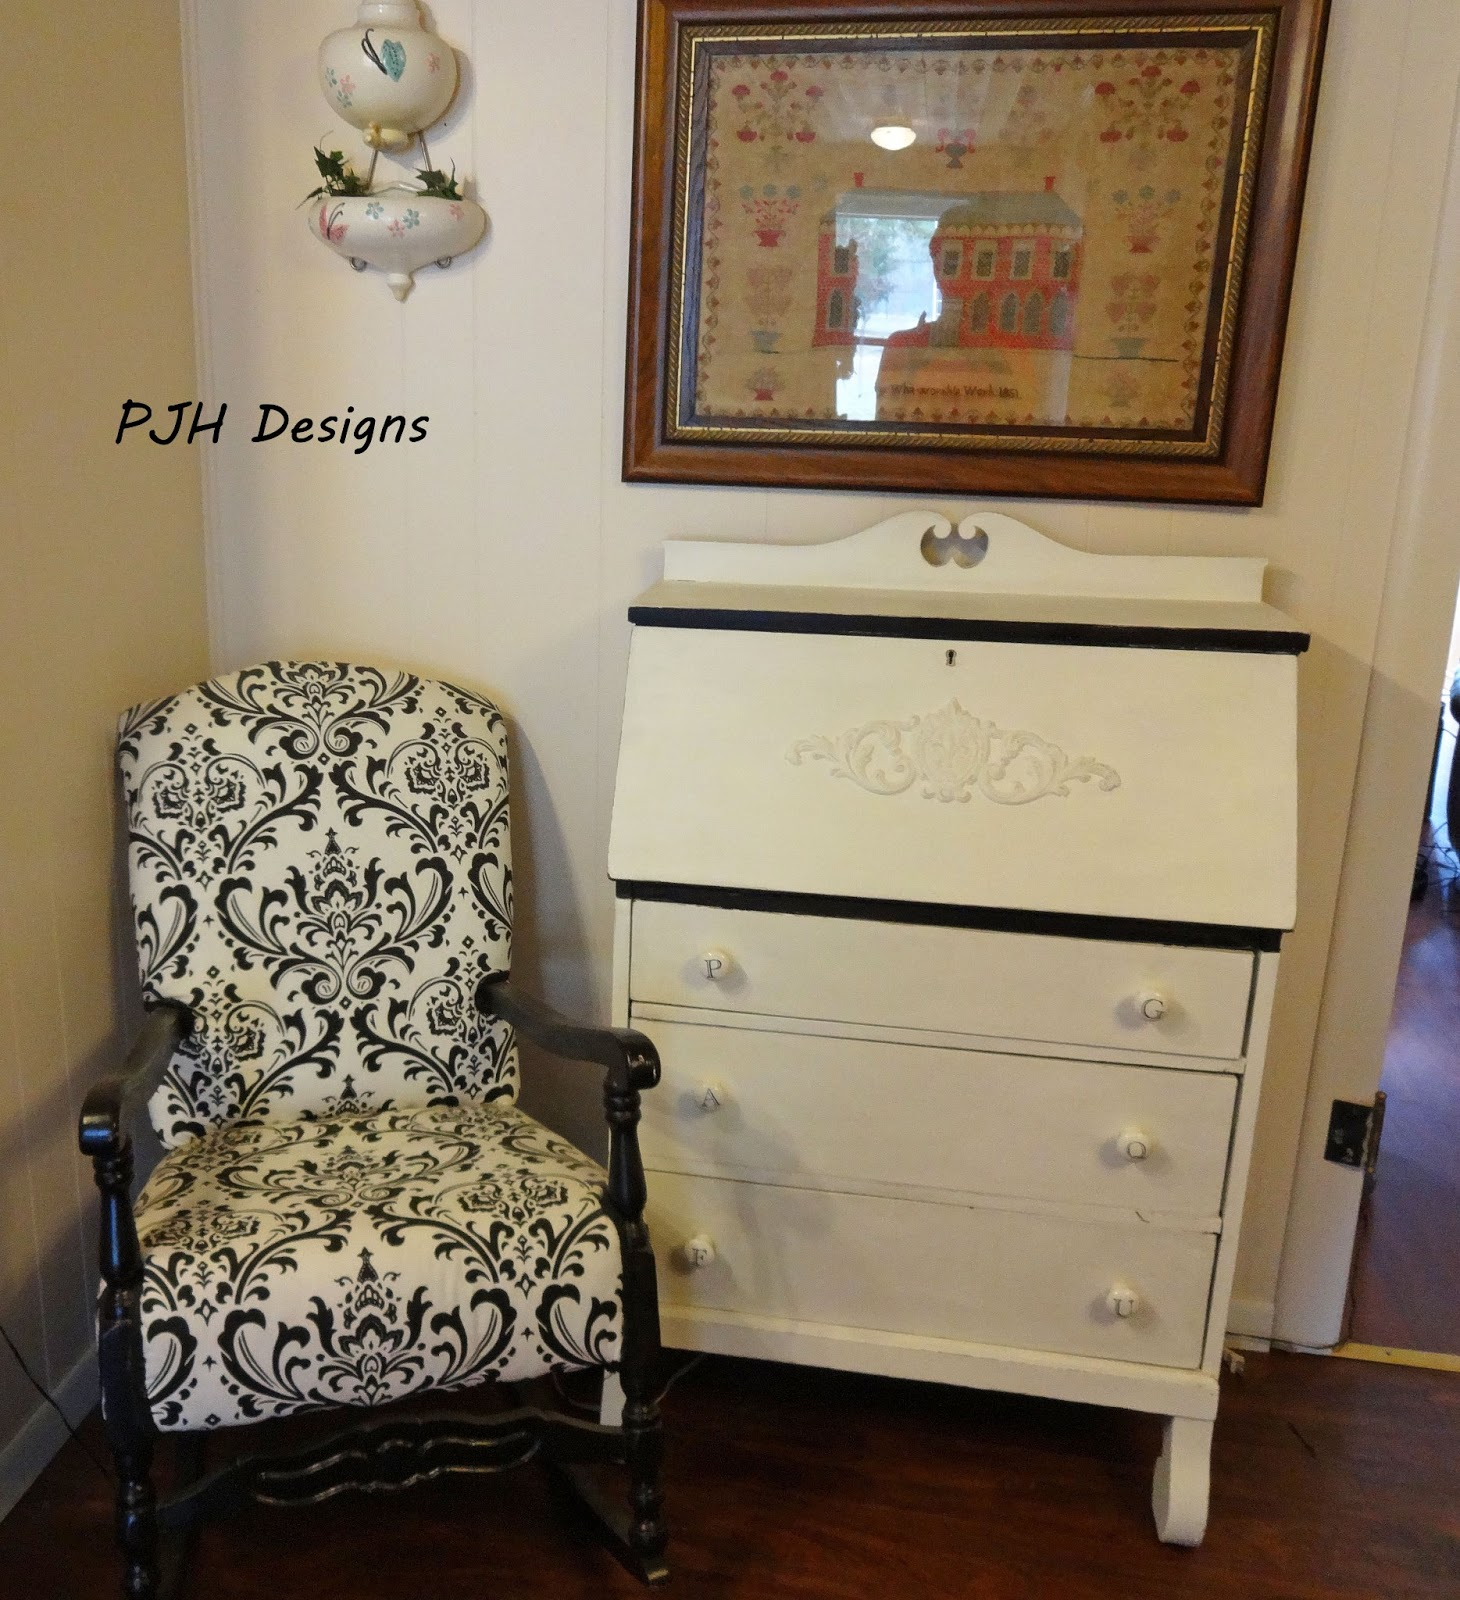 PJH Designs Hand Painted Antique Furniture: Black And White Secretary Redone - PJH Designs Hand Painted Antique Furniture: Black And White